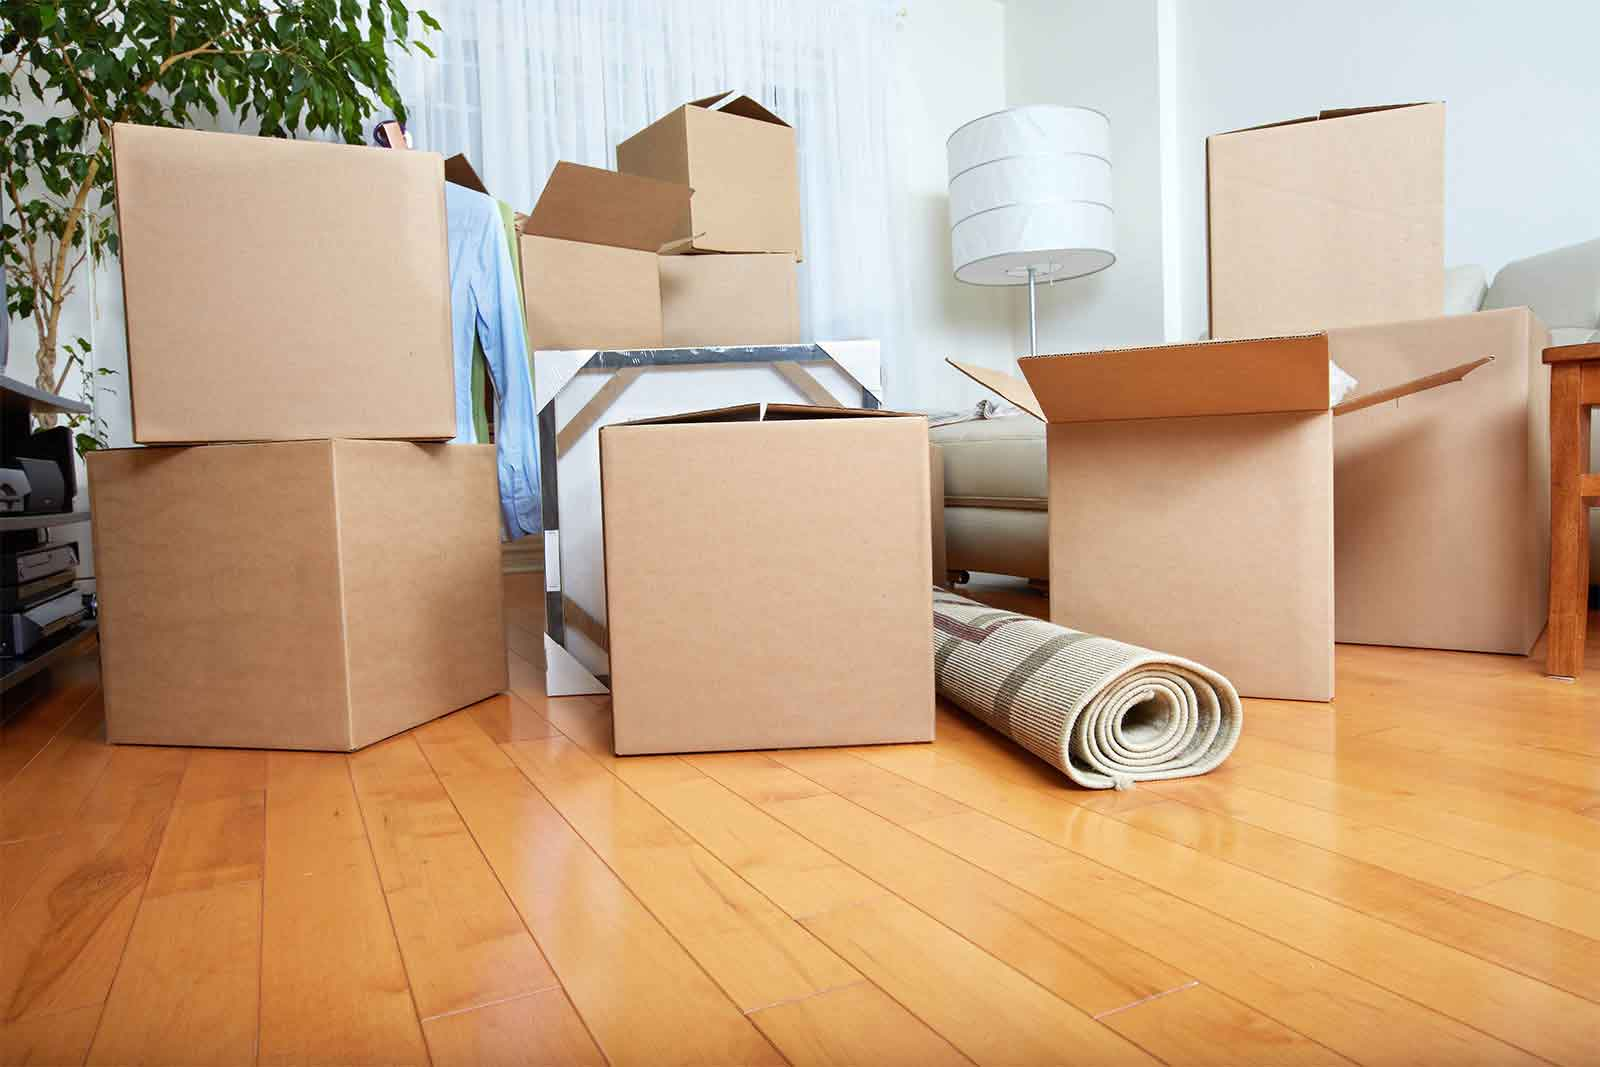 House Removals Romford, Things You Should Know Before Hiring House Removals Romford